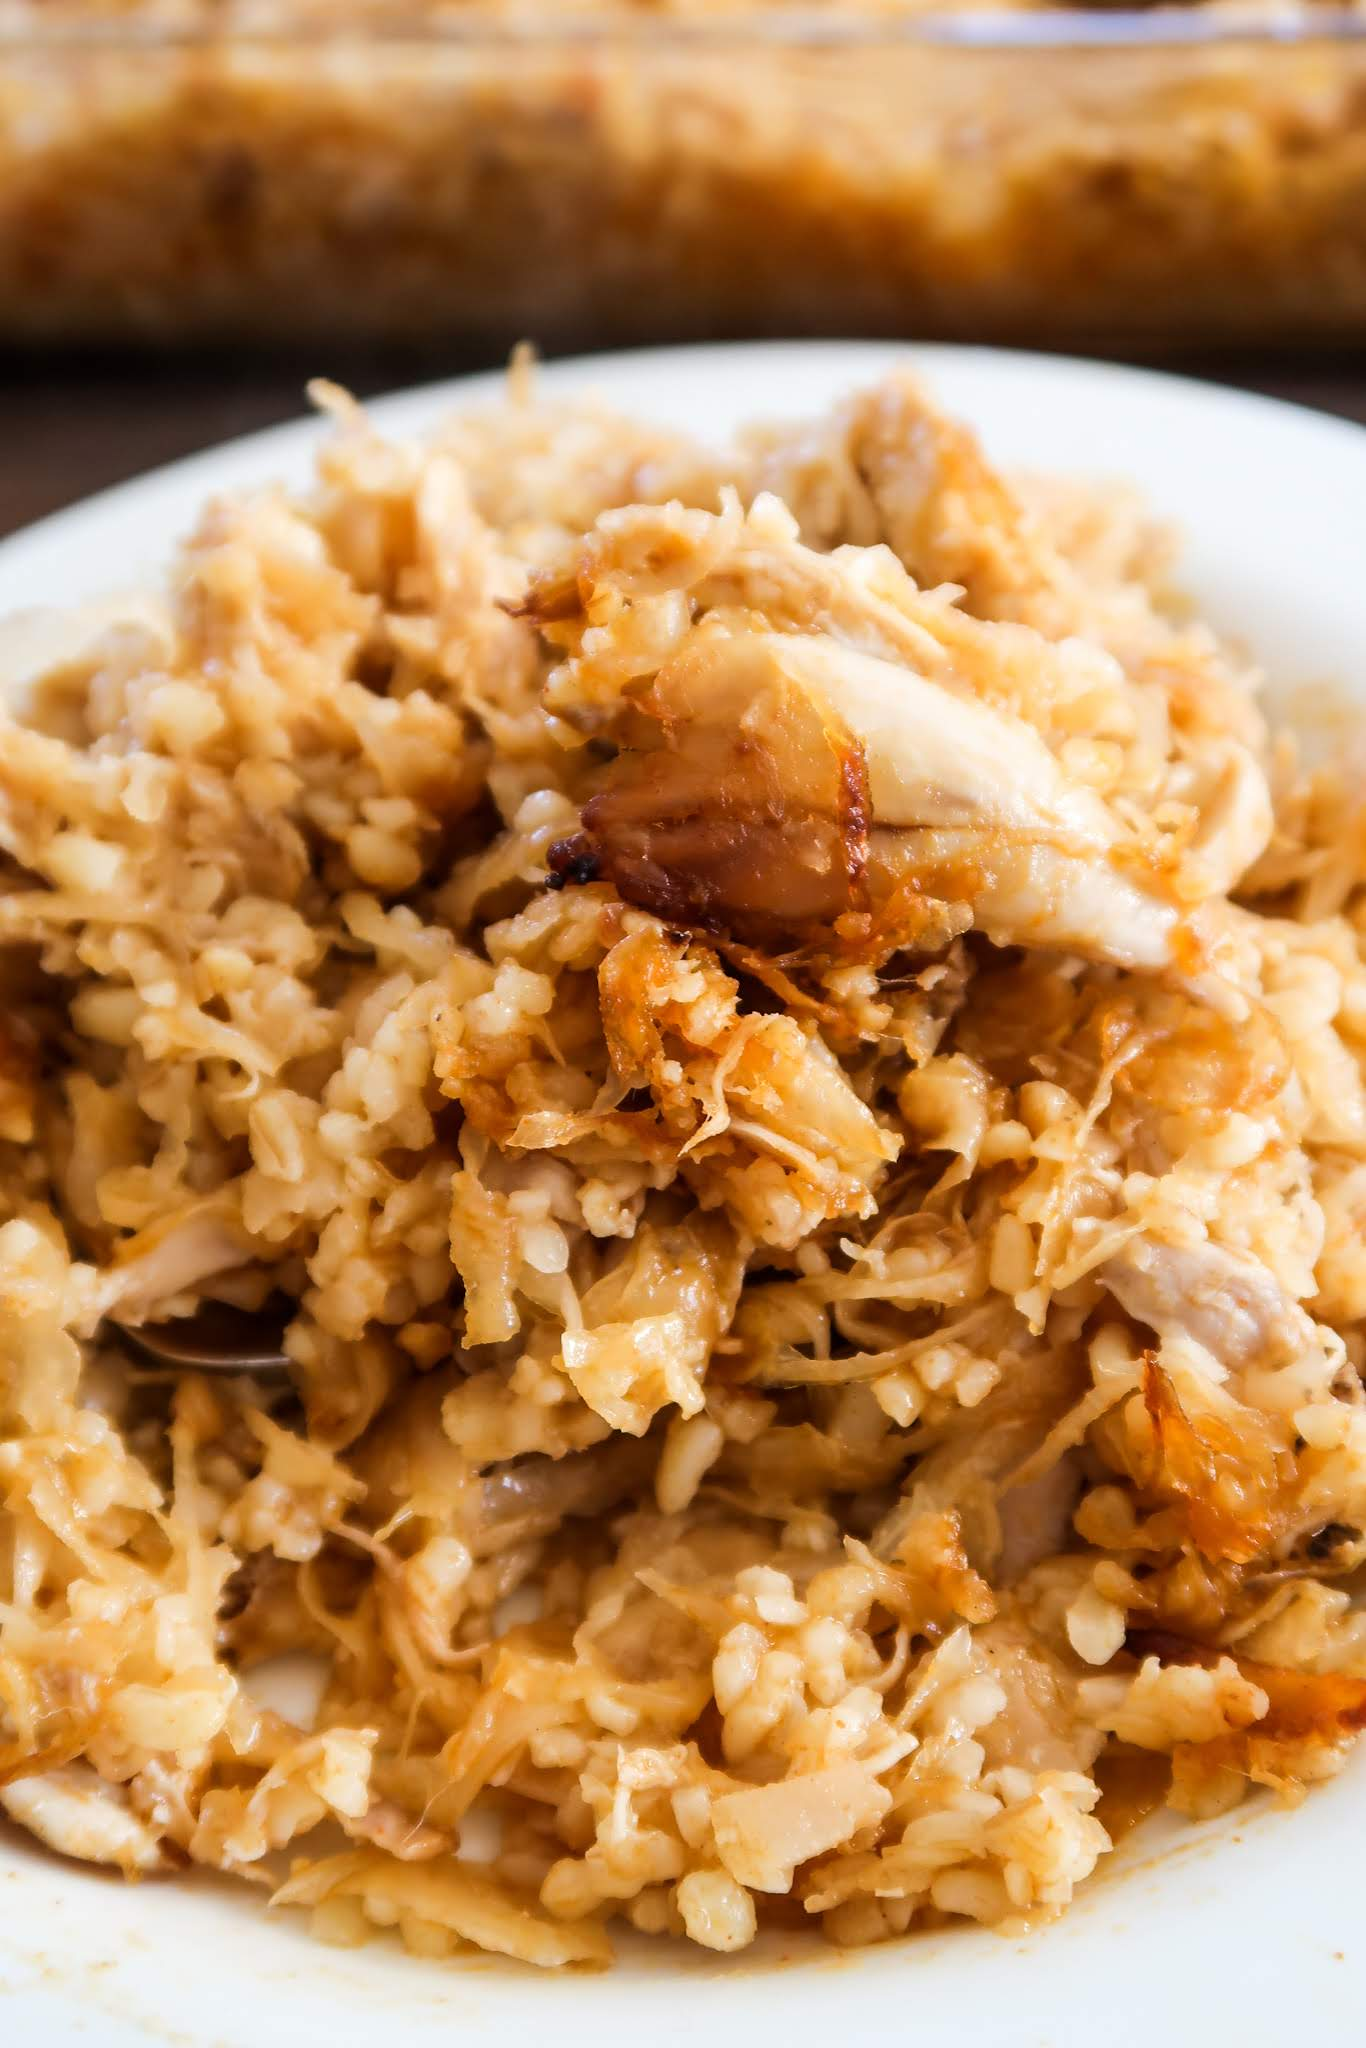 Chicken With Sauerkraut And Bulgur - easy chicken dinner recipe that requires almost no cooking skills - you basically put 6 ingredients in a cooking pot and cook them. This sauerkraut recipe is spicy, healthy and very delicious!